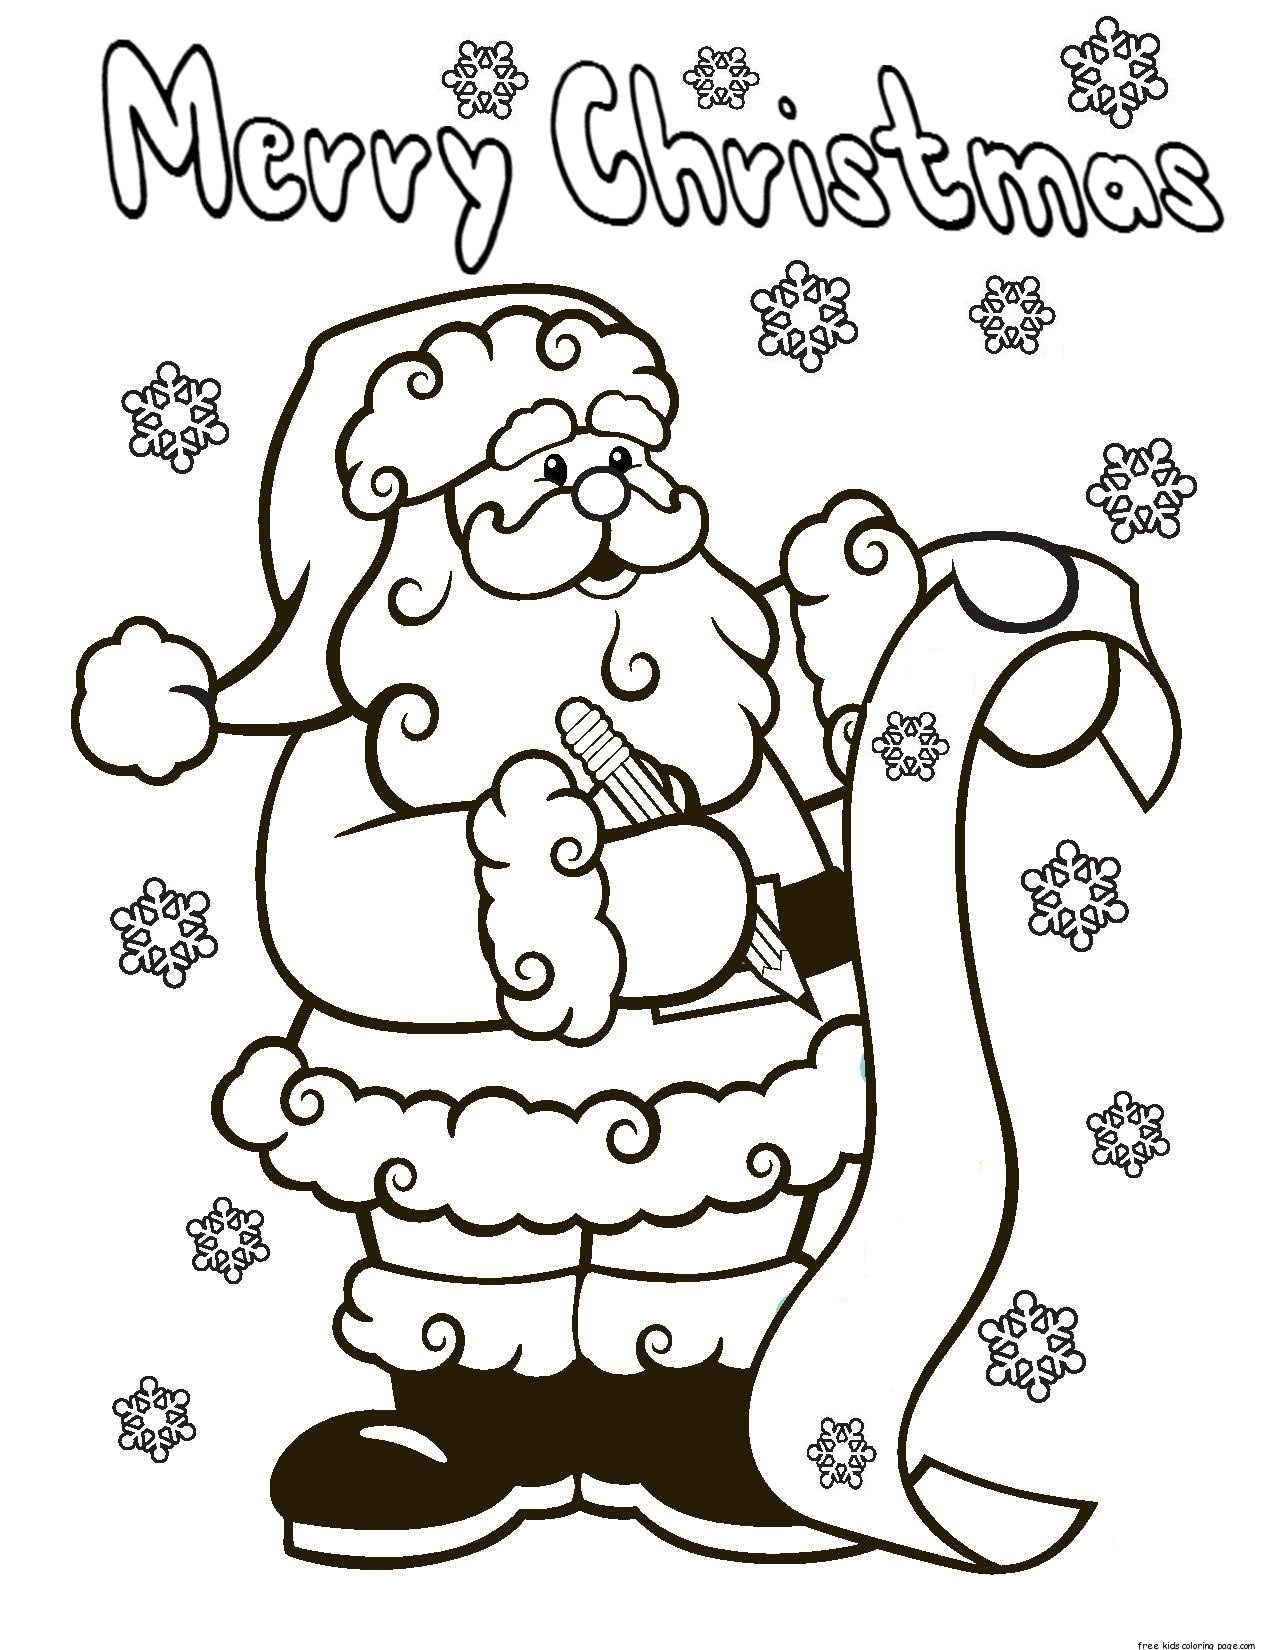 Christmas Colouring Pages Easy With Coloring Gallery Free Books